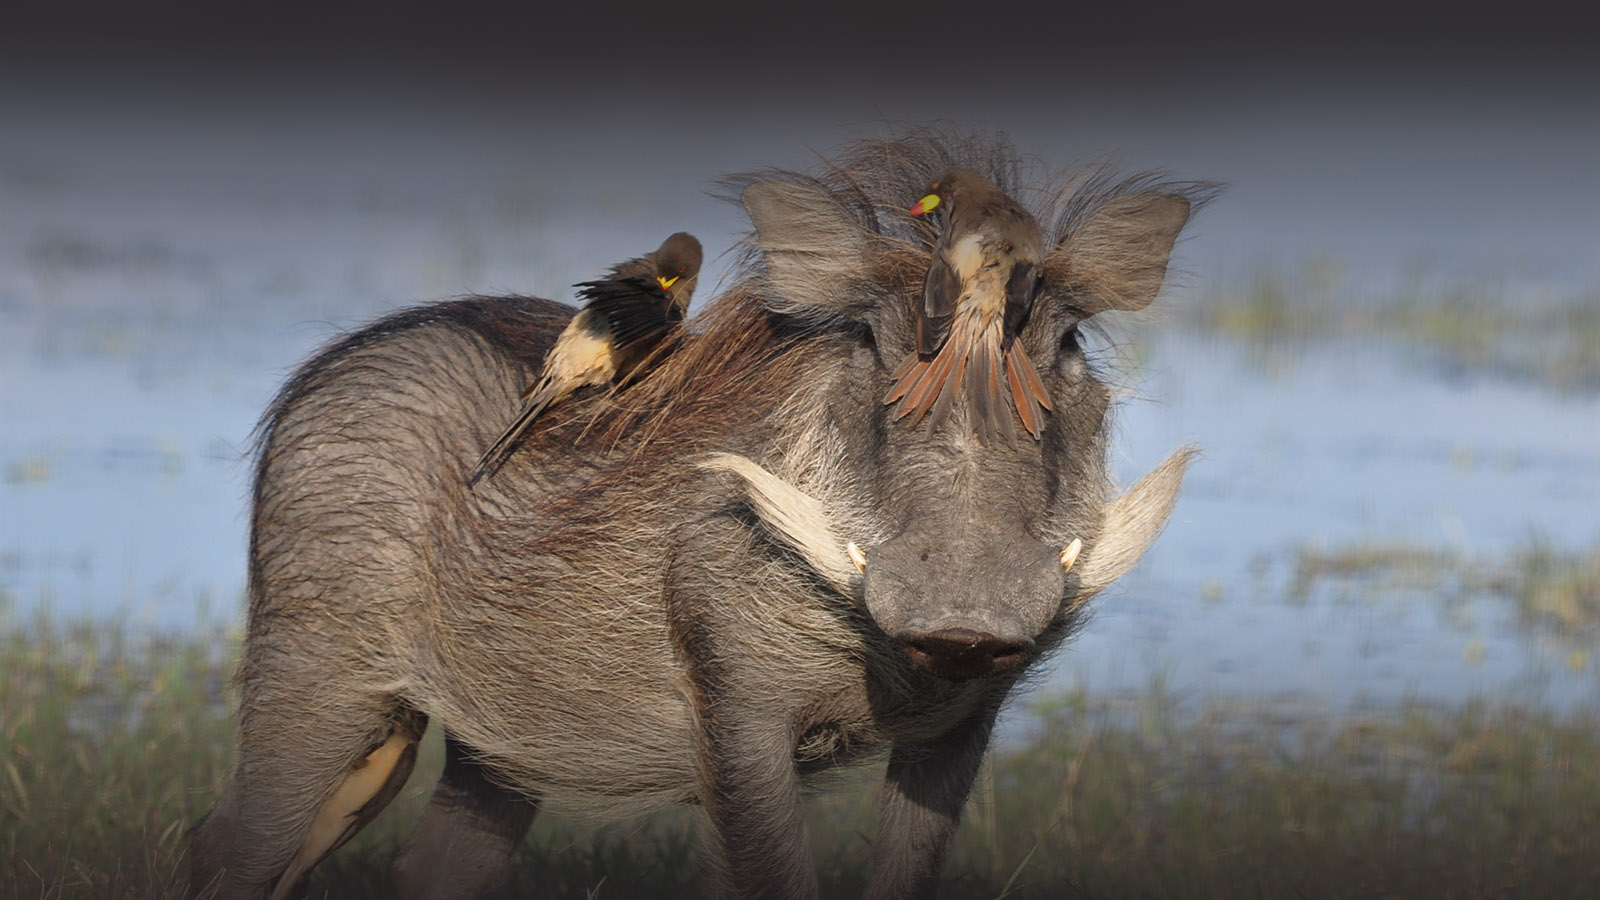 the hide hwange-national-park-lodges-zimbabwe-accommodation-warthog-birds